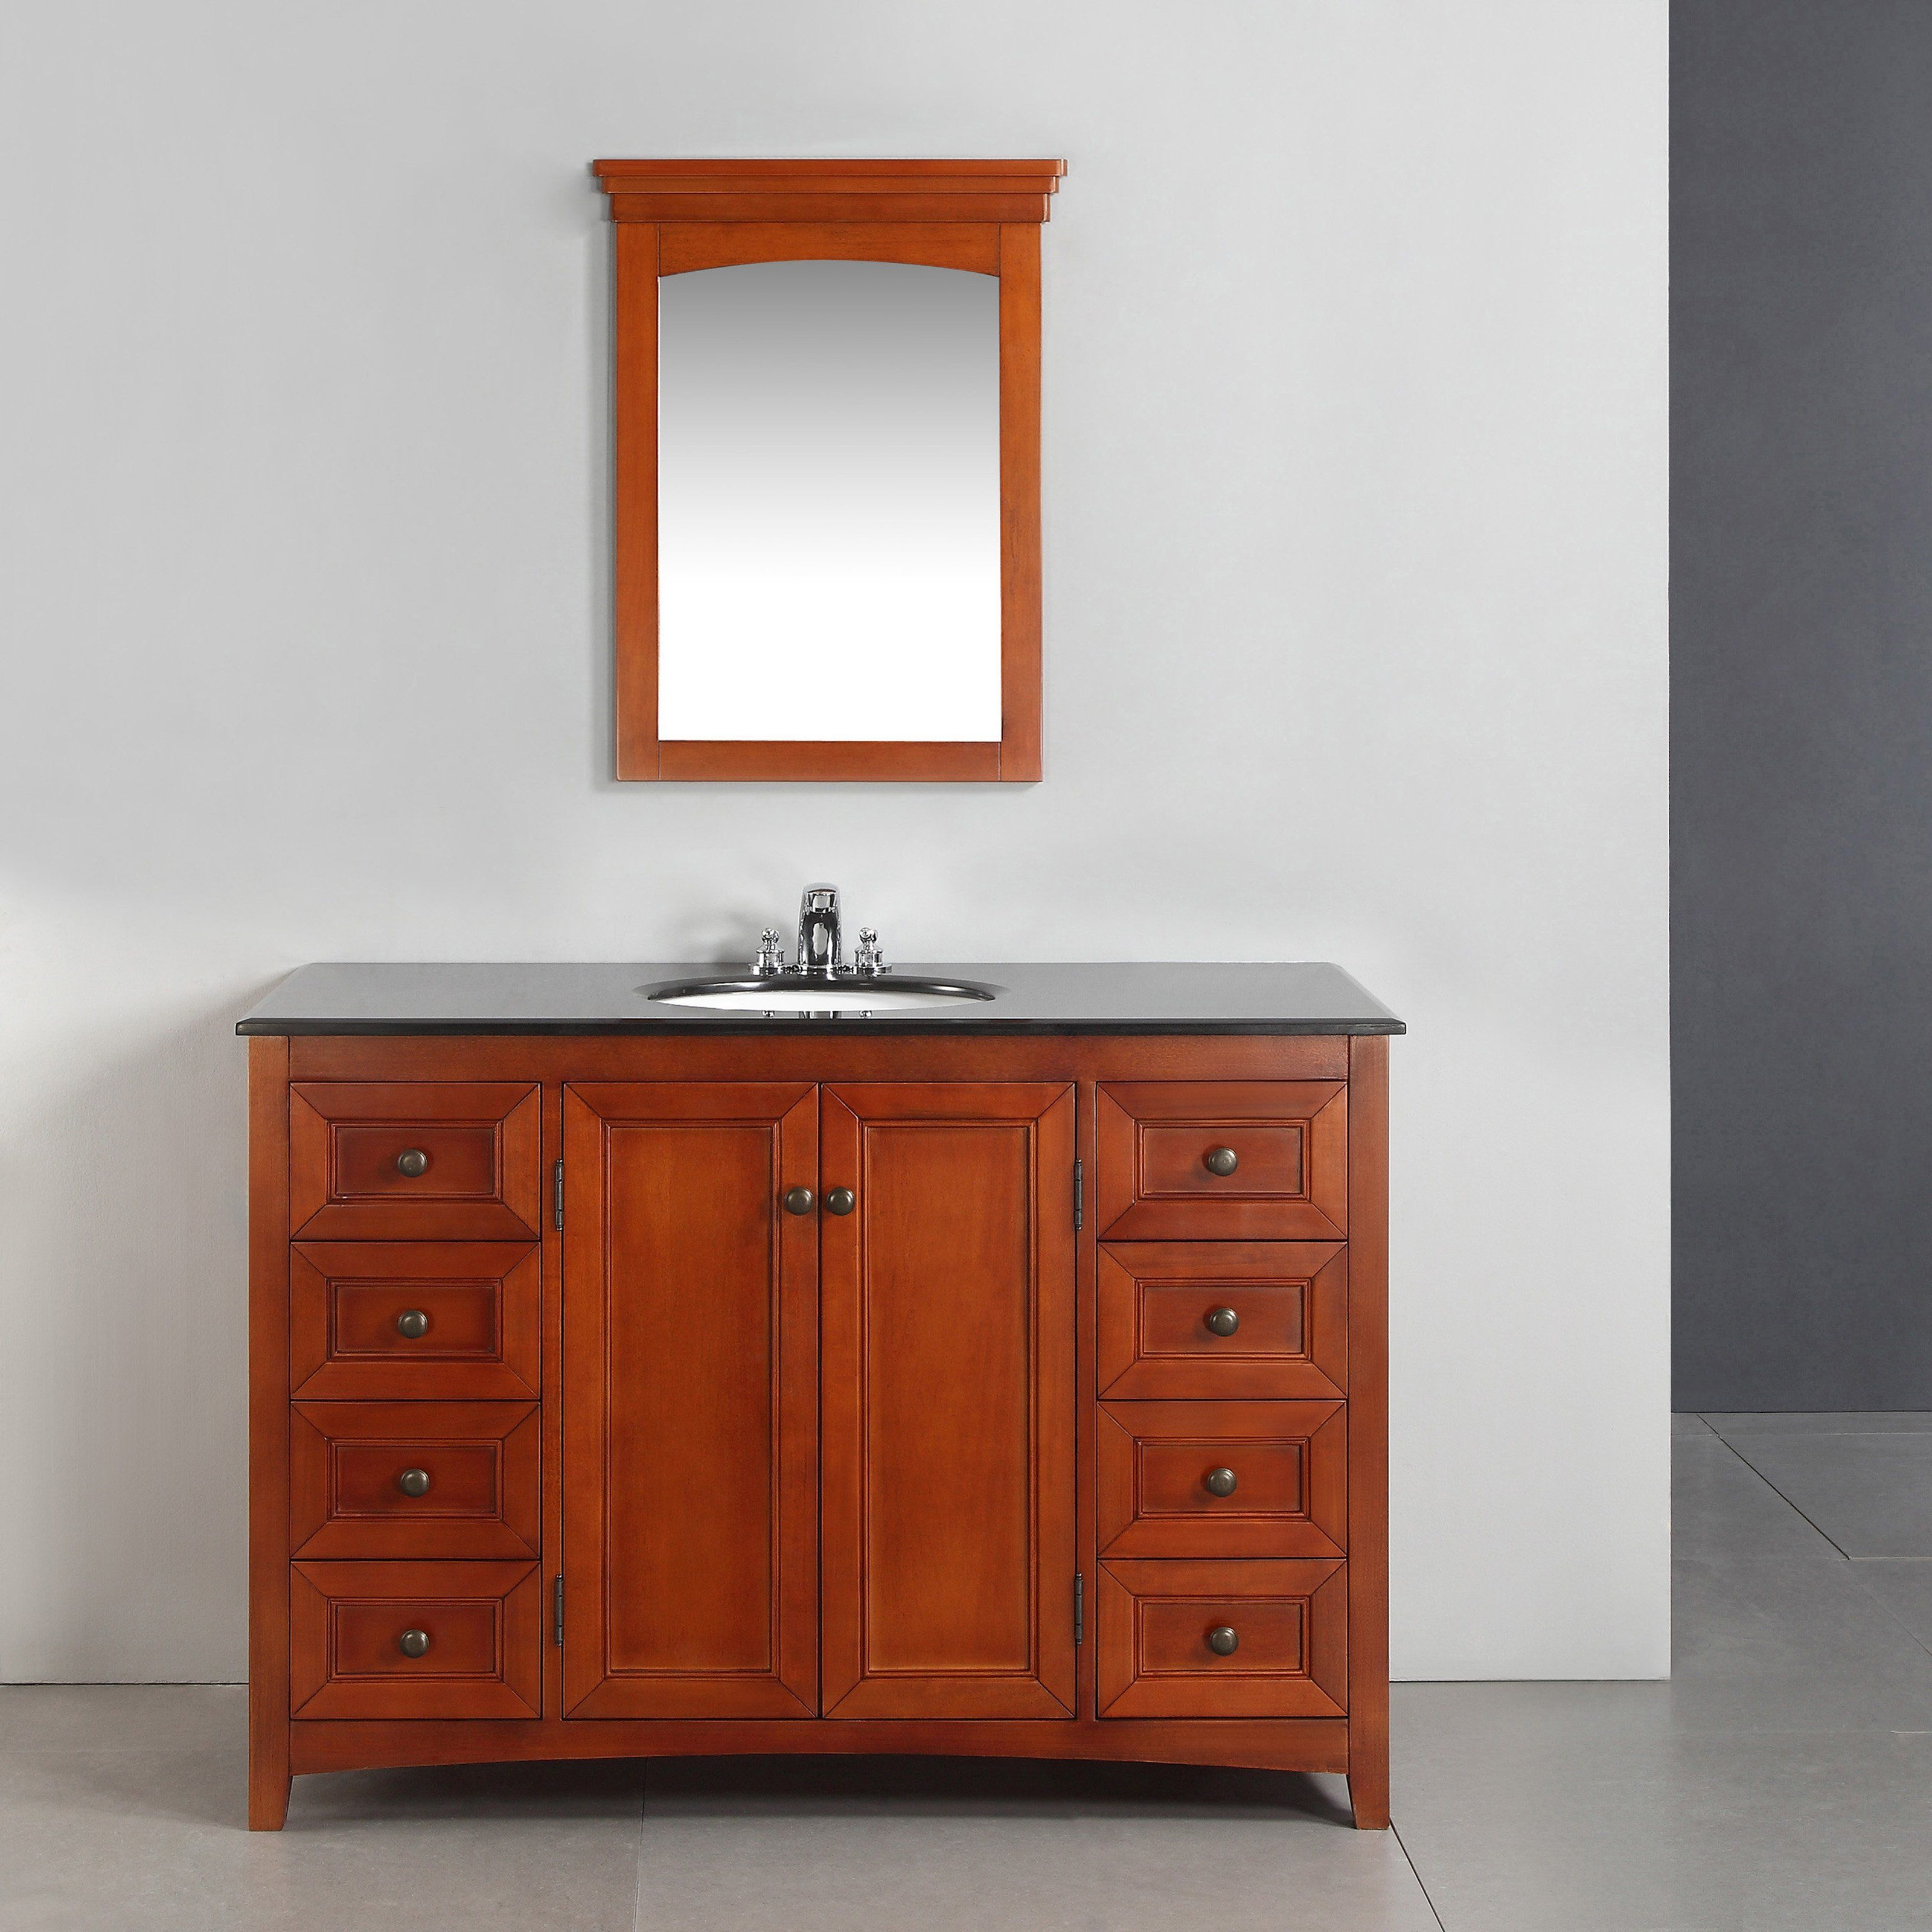 bath single reviews wayfair bathroom pdx kitchen vanity improvement set home ari jude